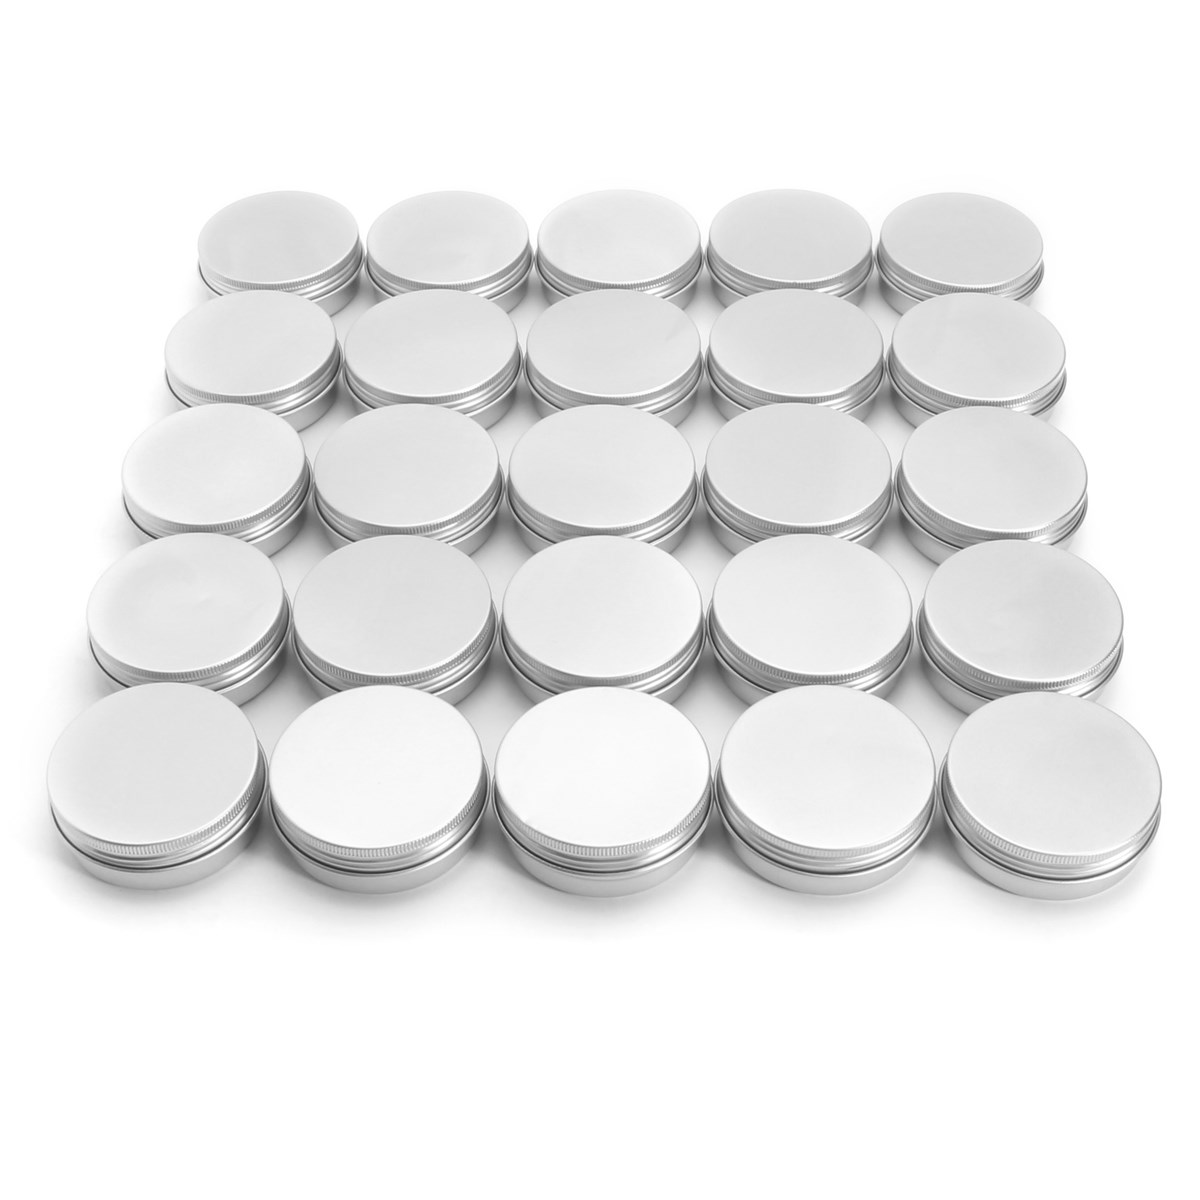 24pcs 60g Nail Gel Powder Makeup Tools Empty Aluminium Cosmetic Container Balm Silver Metal Jar Can Tin For Ointment Hand Cream survival kit tin higen lid small empty silver flip metal storage box case organizer for money coin candy keys